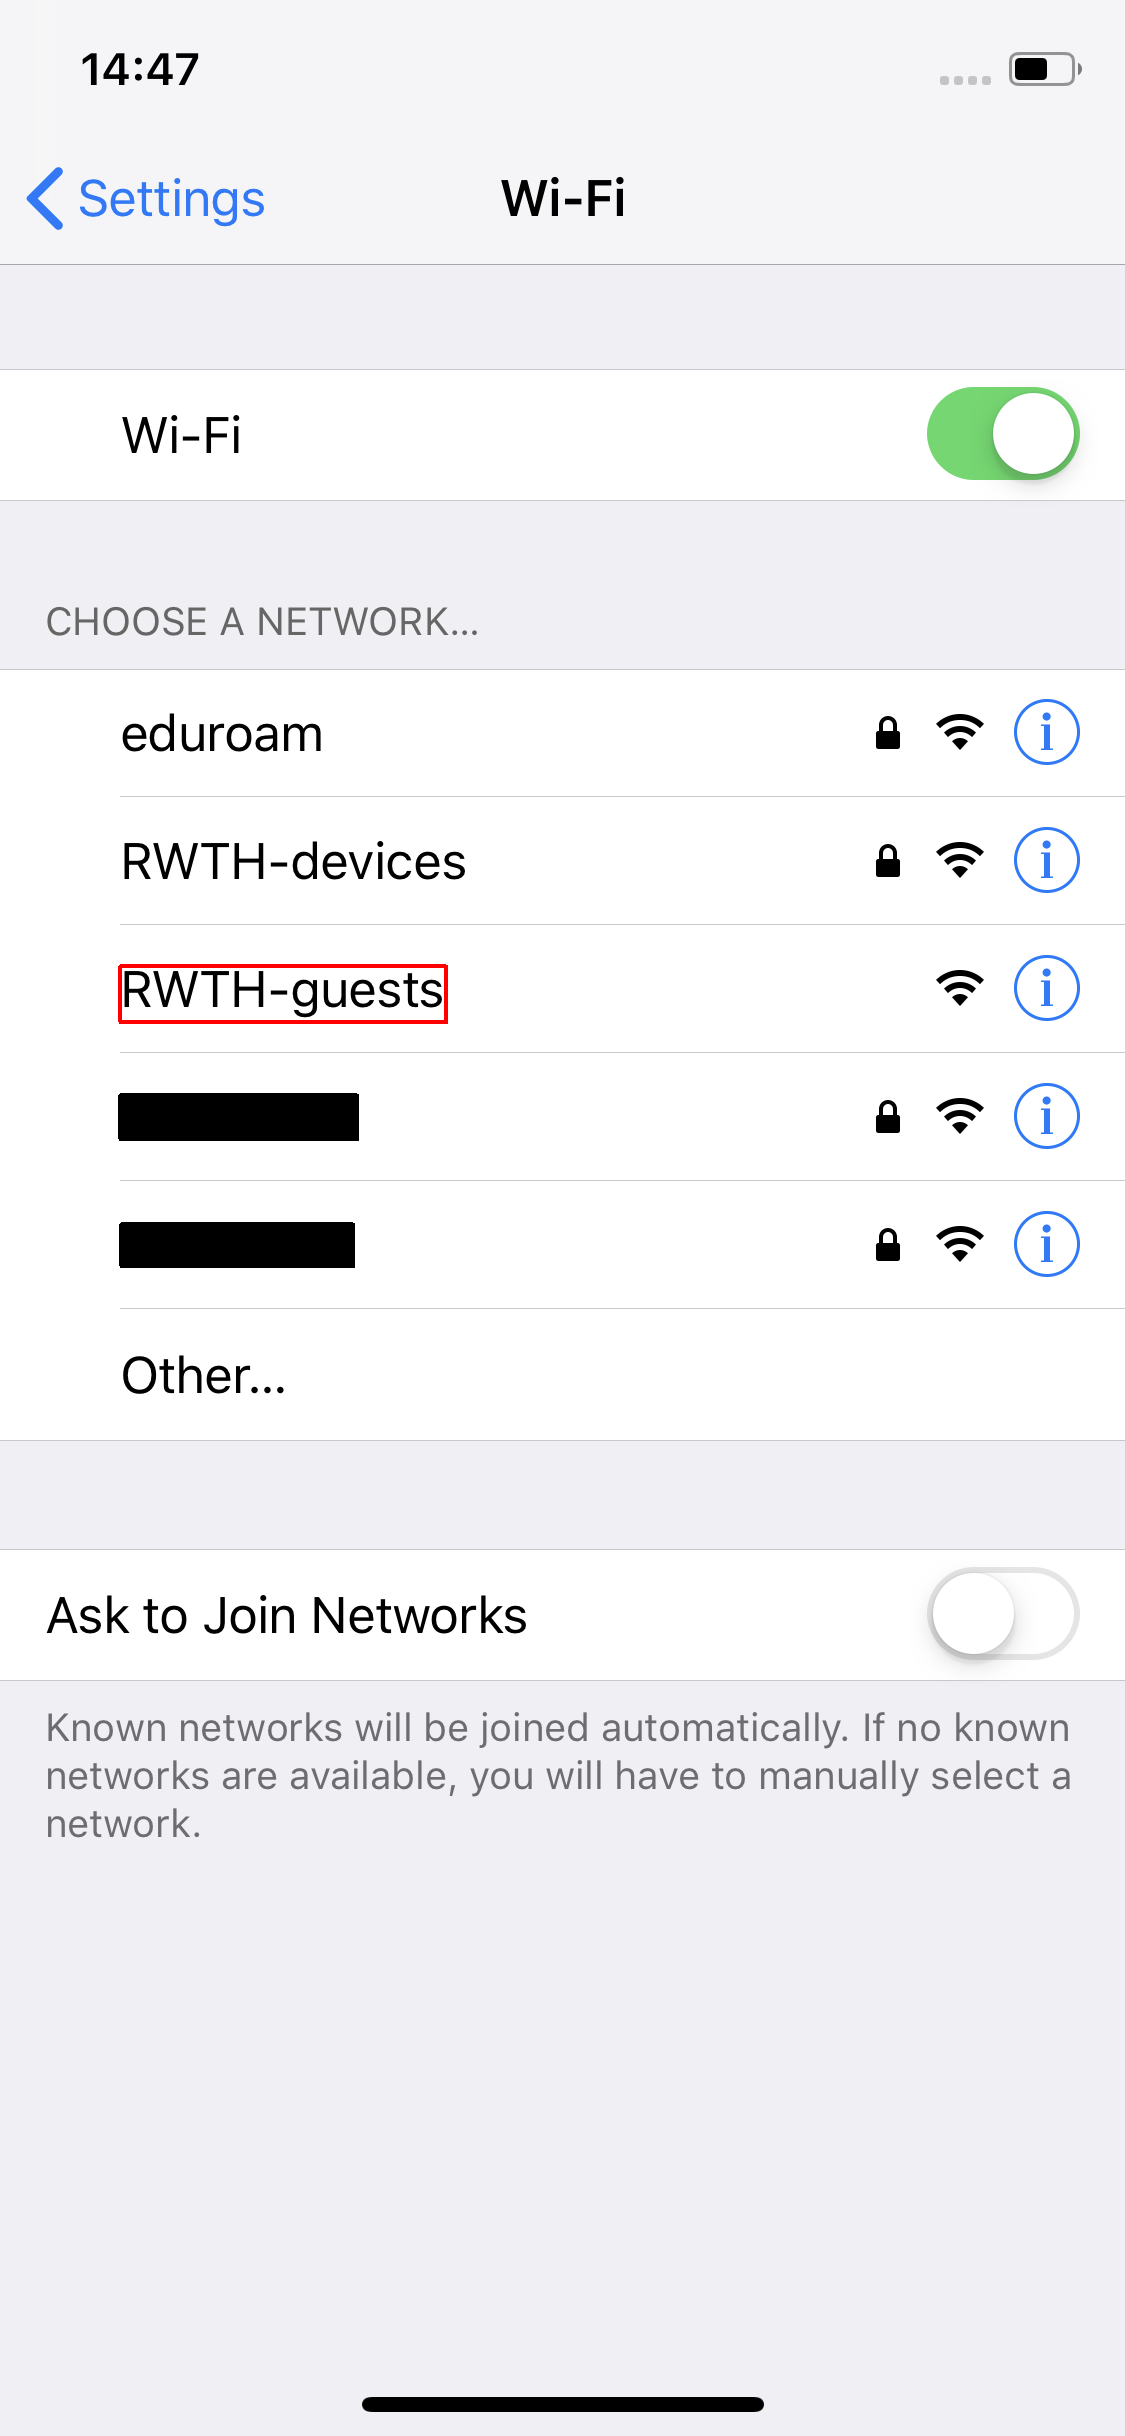 connect to RWTH-guests